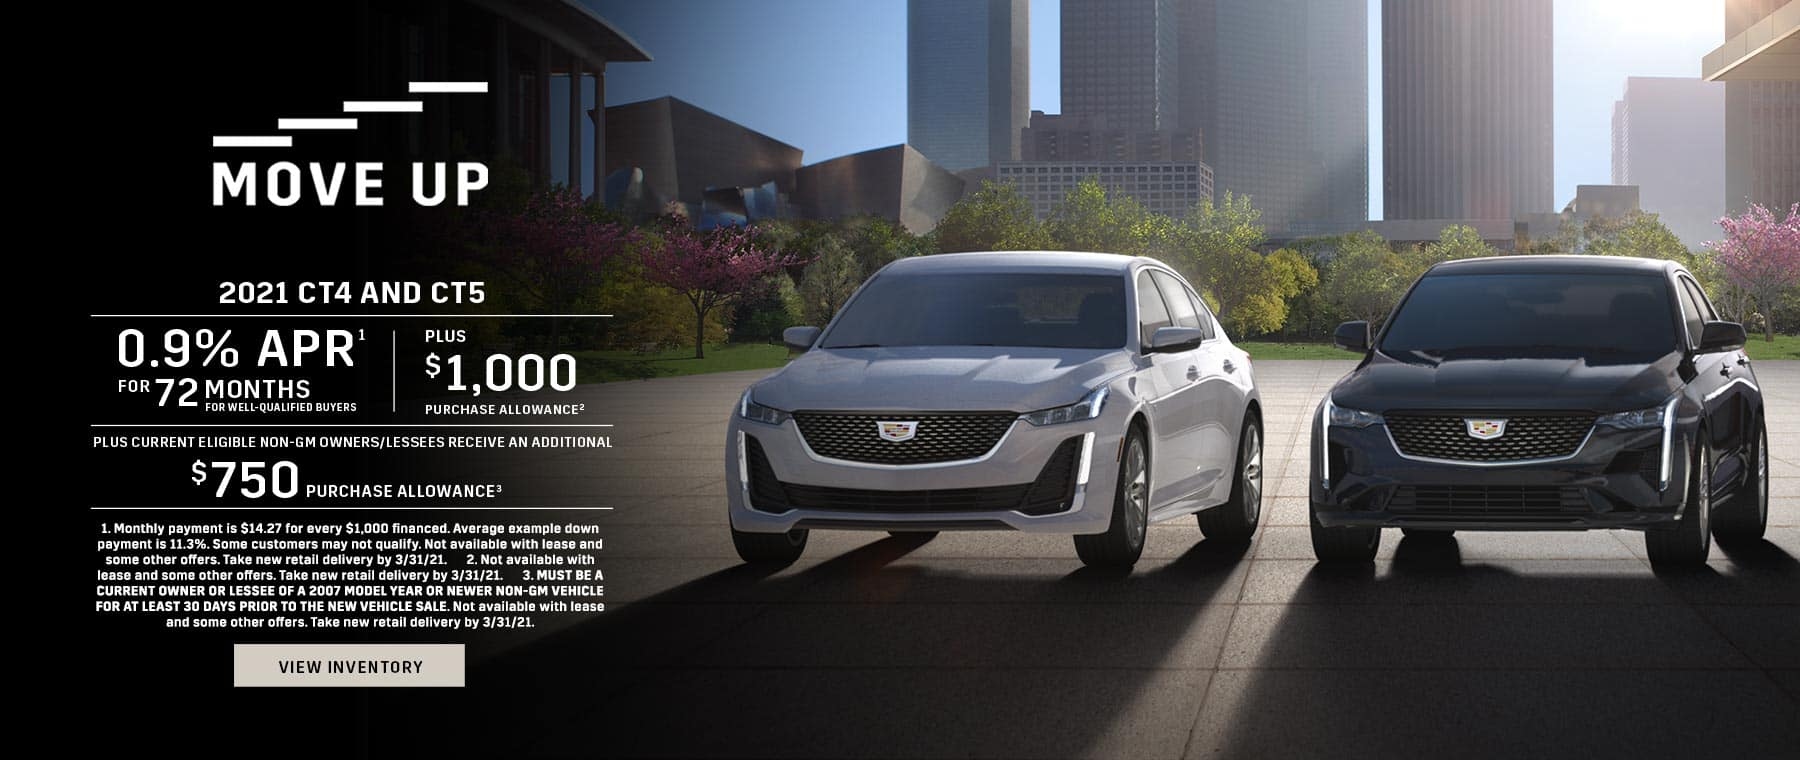 2021 Cadillac CT4 and CT5 0.9% APR for 72 + $1,000 + $750